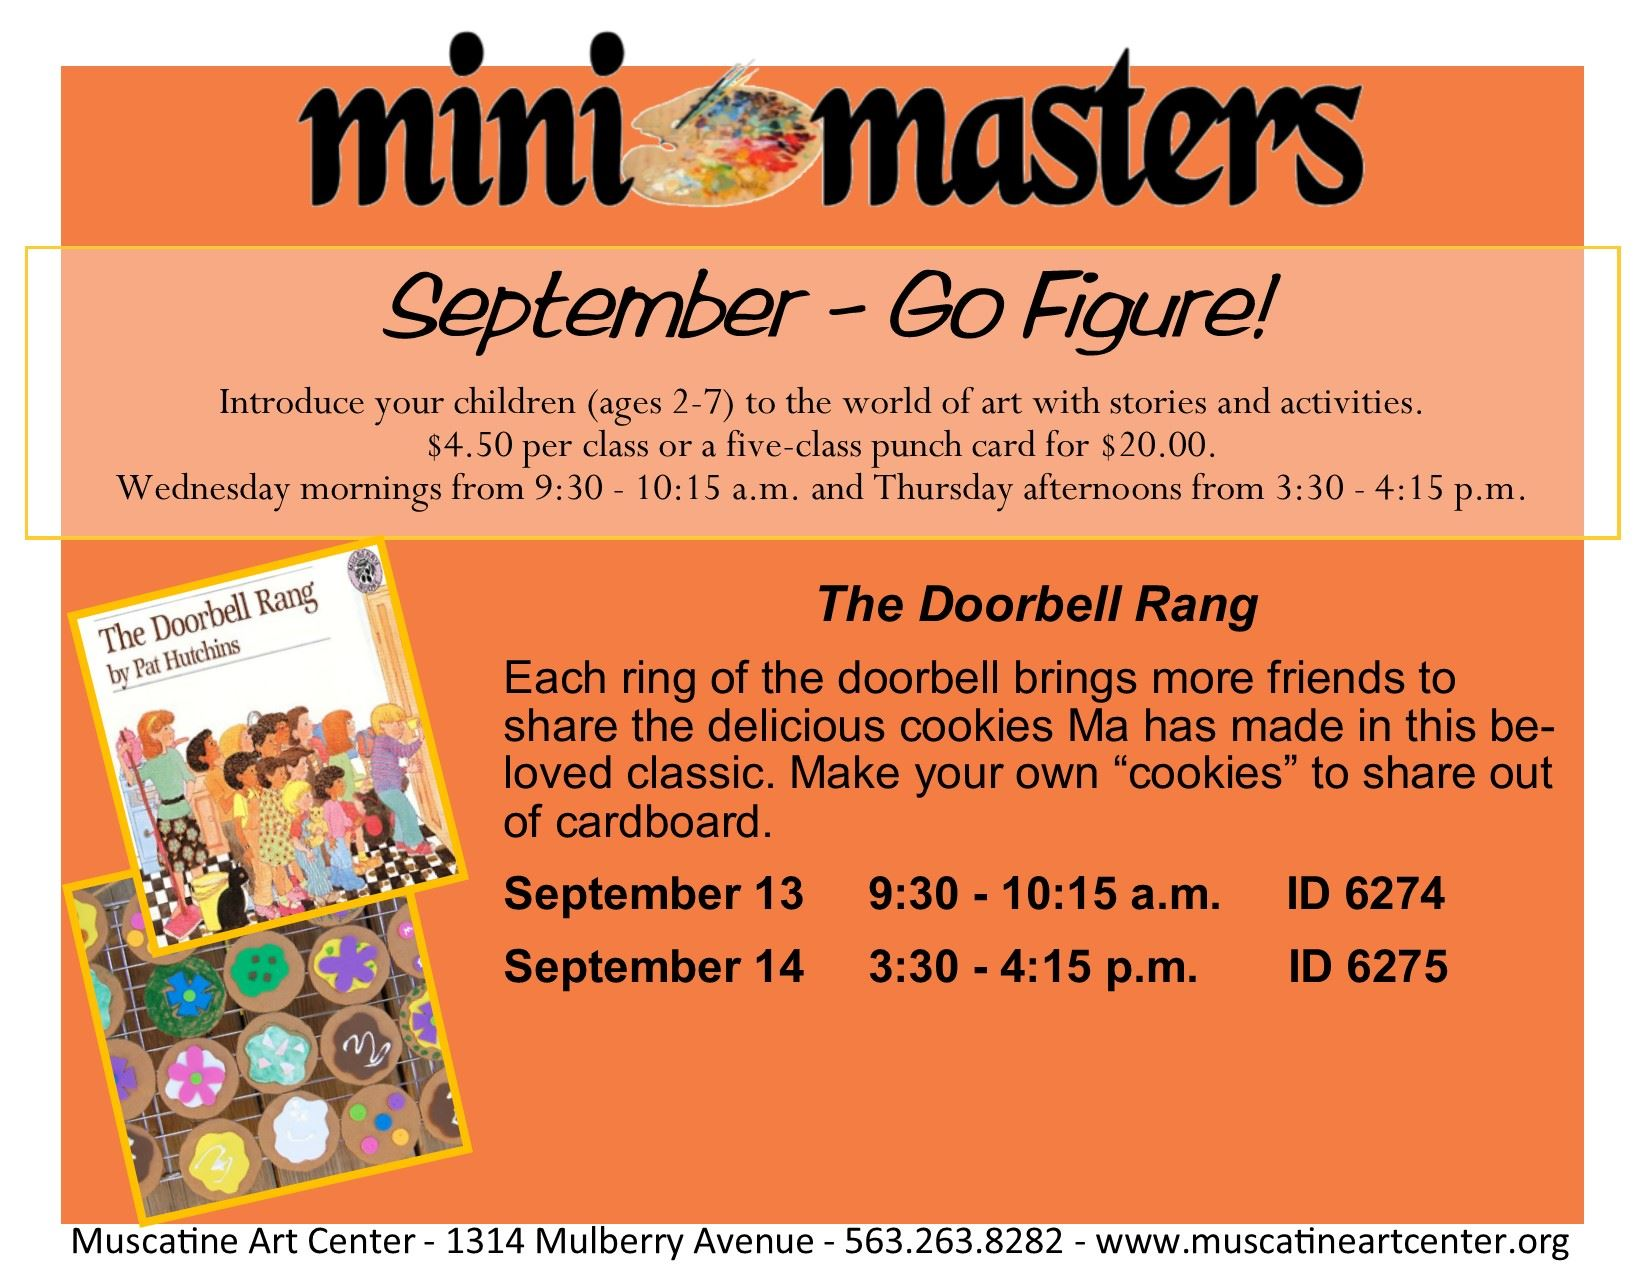 Sept 13-14  - Mini Masters - The Doorbell Rang